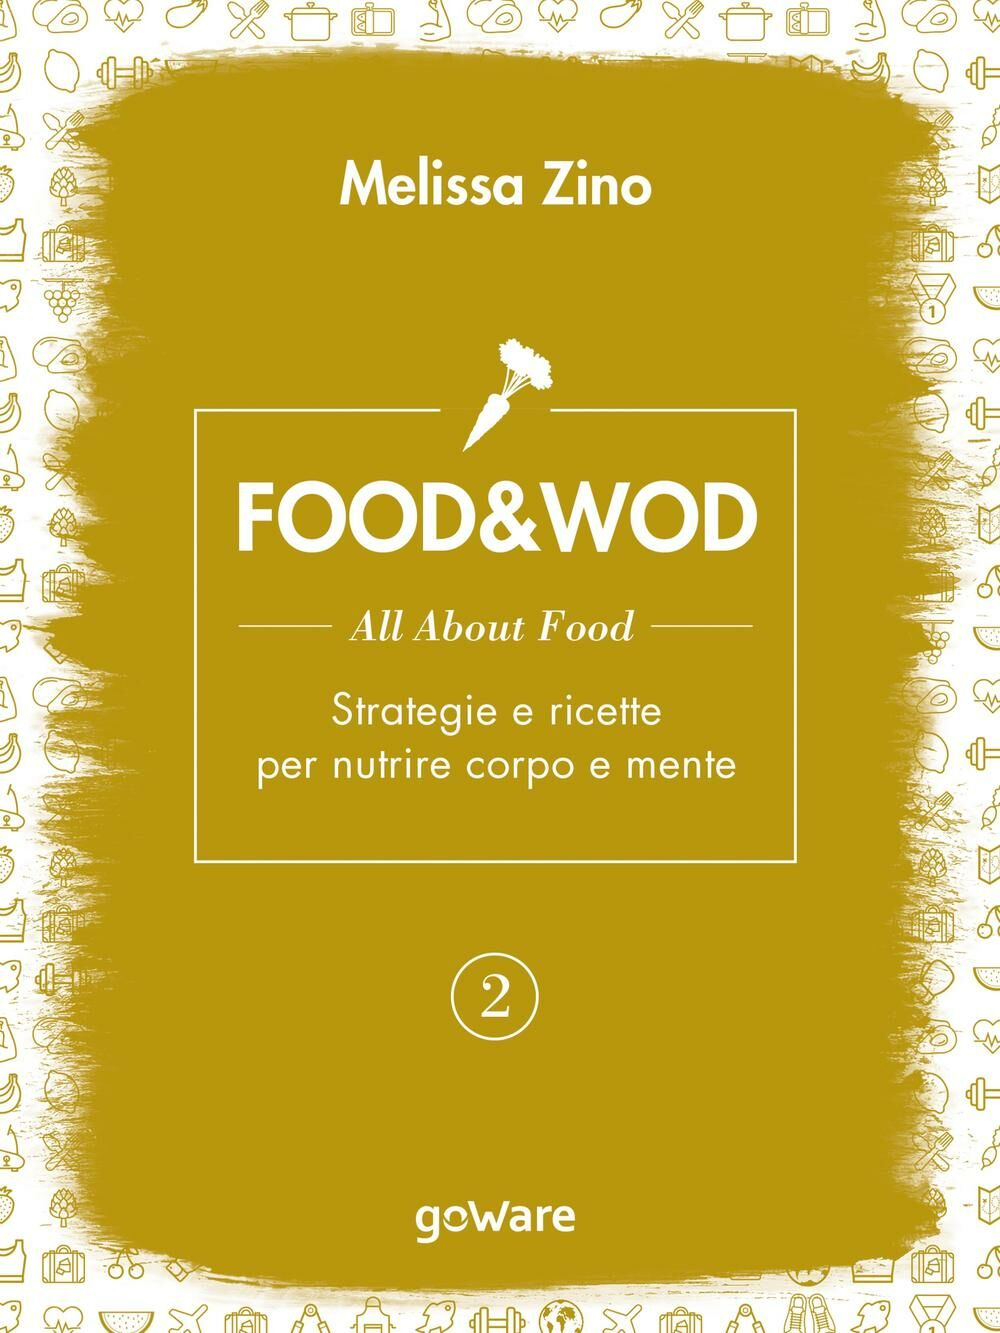 Food&Wod. Vol. 2: All about food. Strategie e ricette per nutrire corpo e mente.